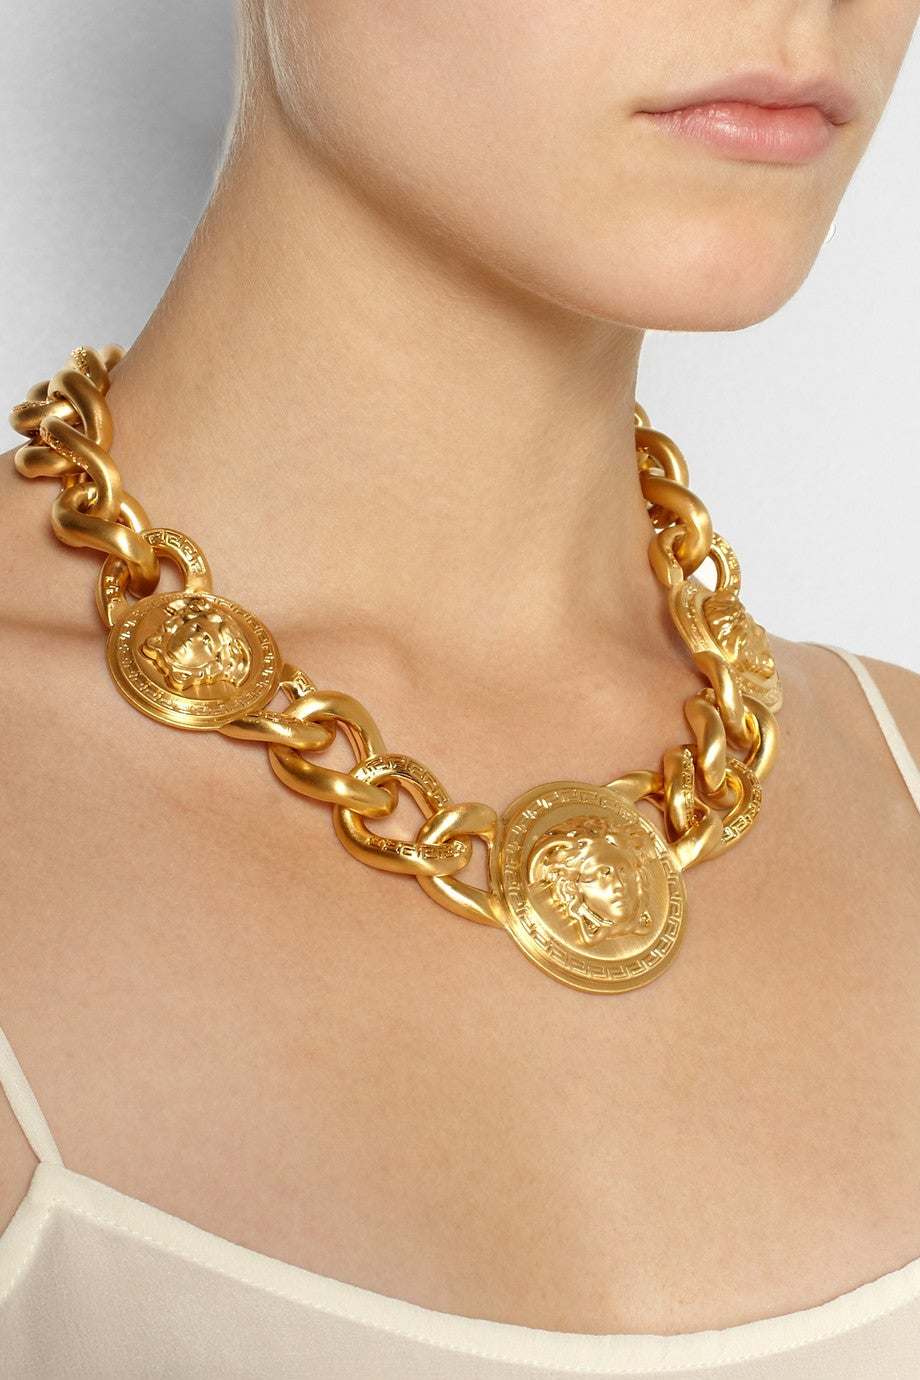 Versace Gold Medusa Charm Chain Necklace For Sale At 1stdibs